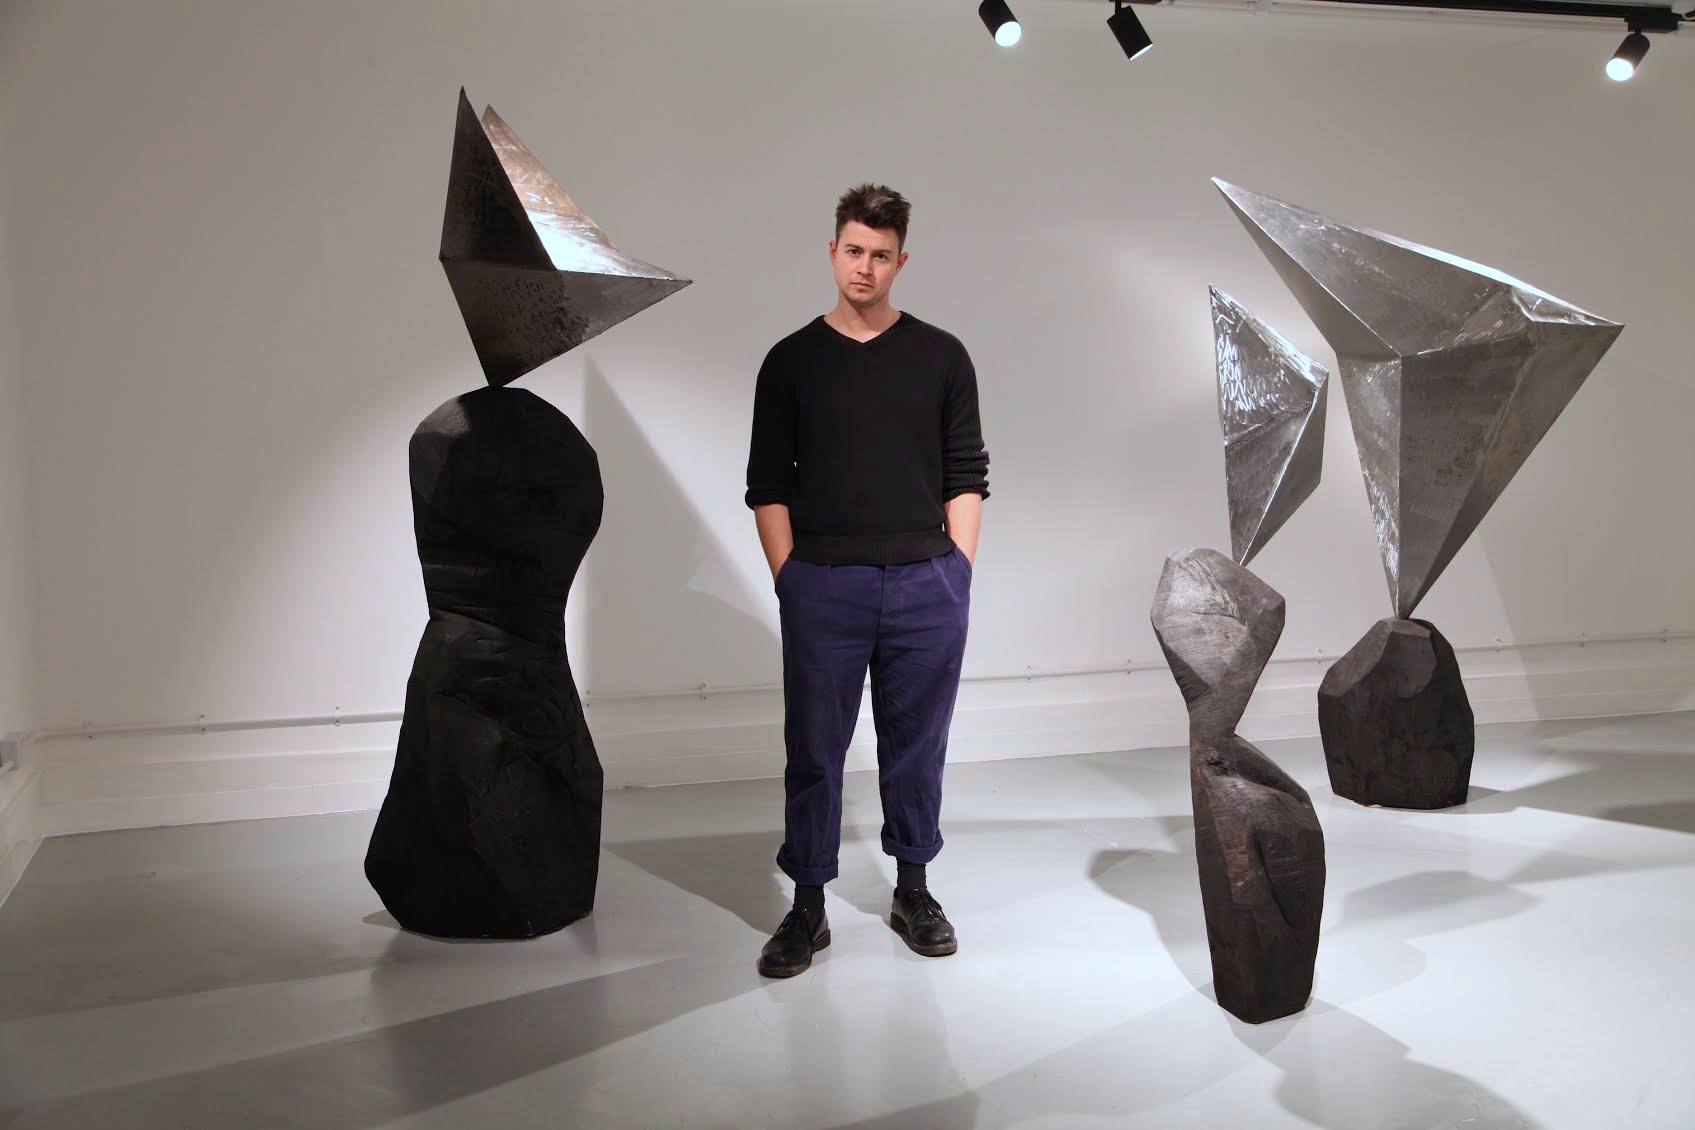 Sol Bailey Barker with his work